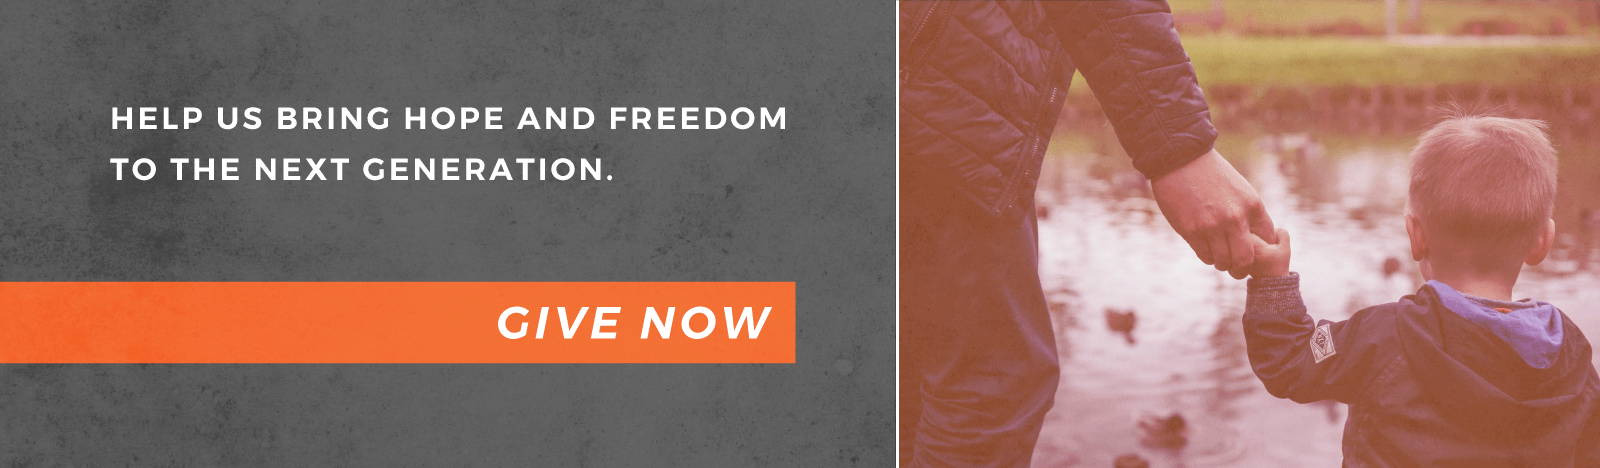 Help us bring hope and freedom to the next generation. Give now.